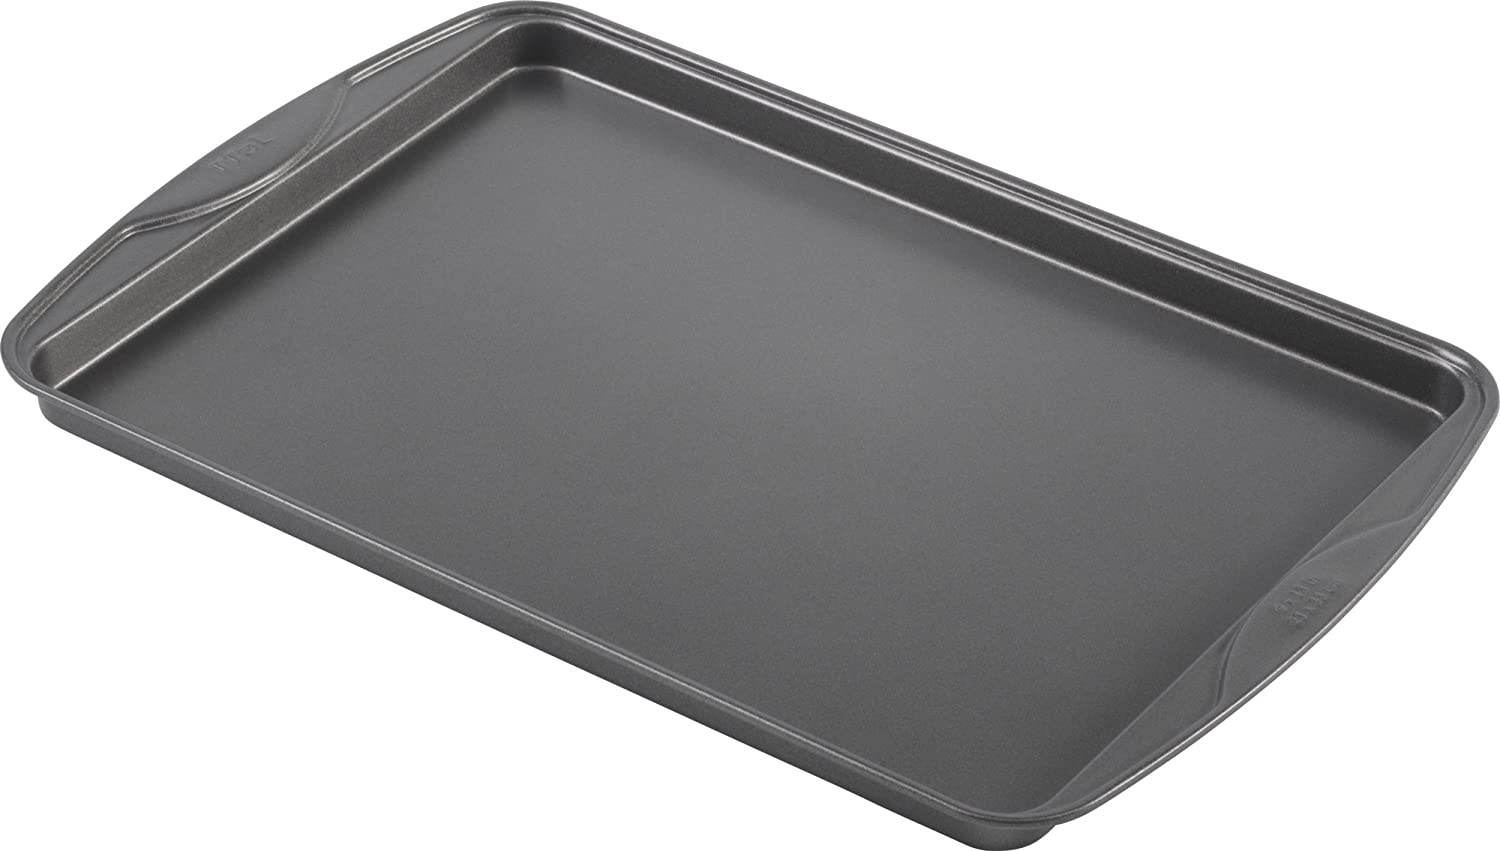 T-fal 84845 Signature Cookie Sheet, Small, Gray